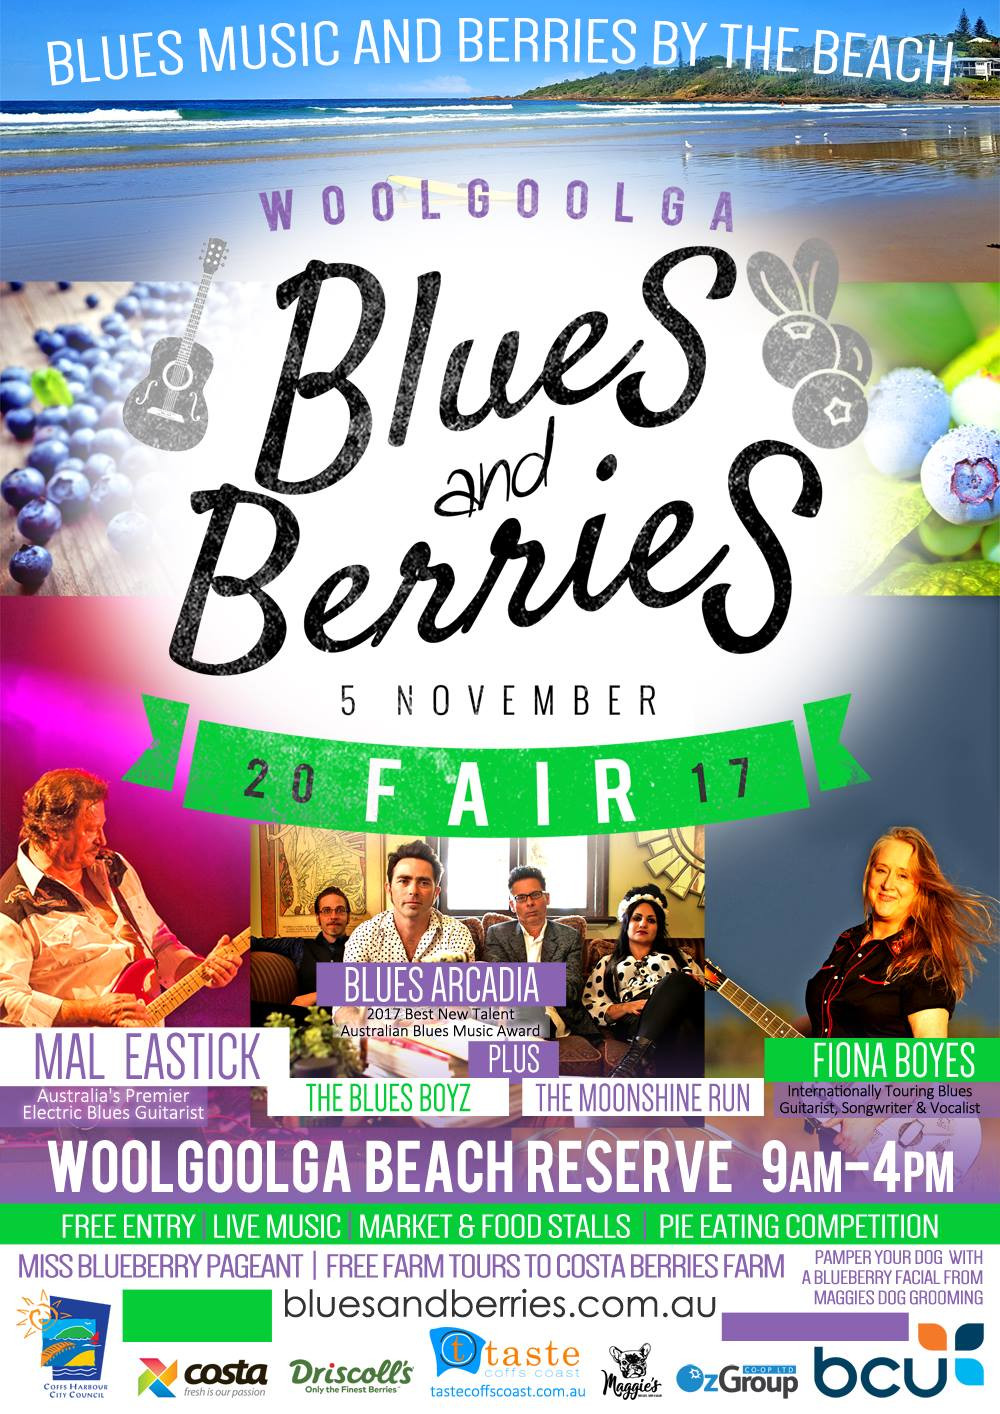 Woolgoolga Blues and Berries festival 2017